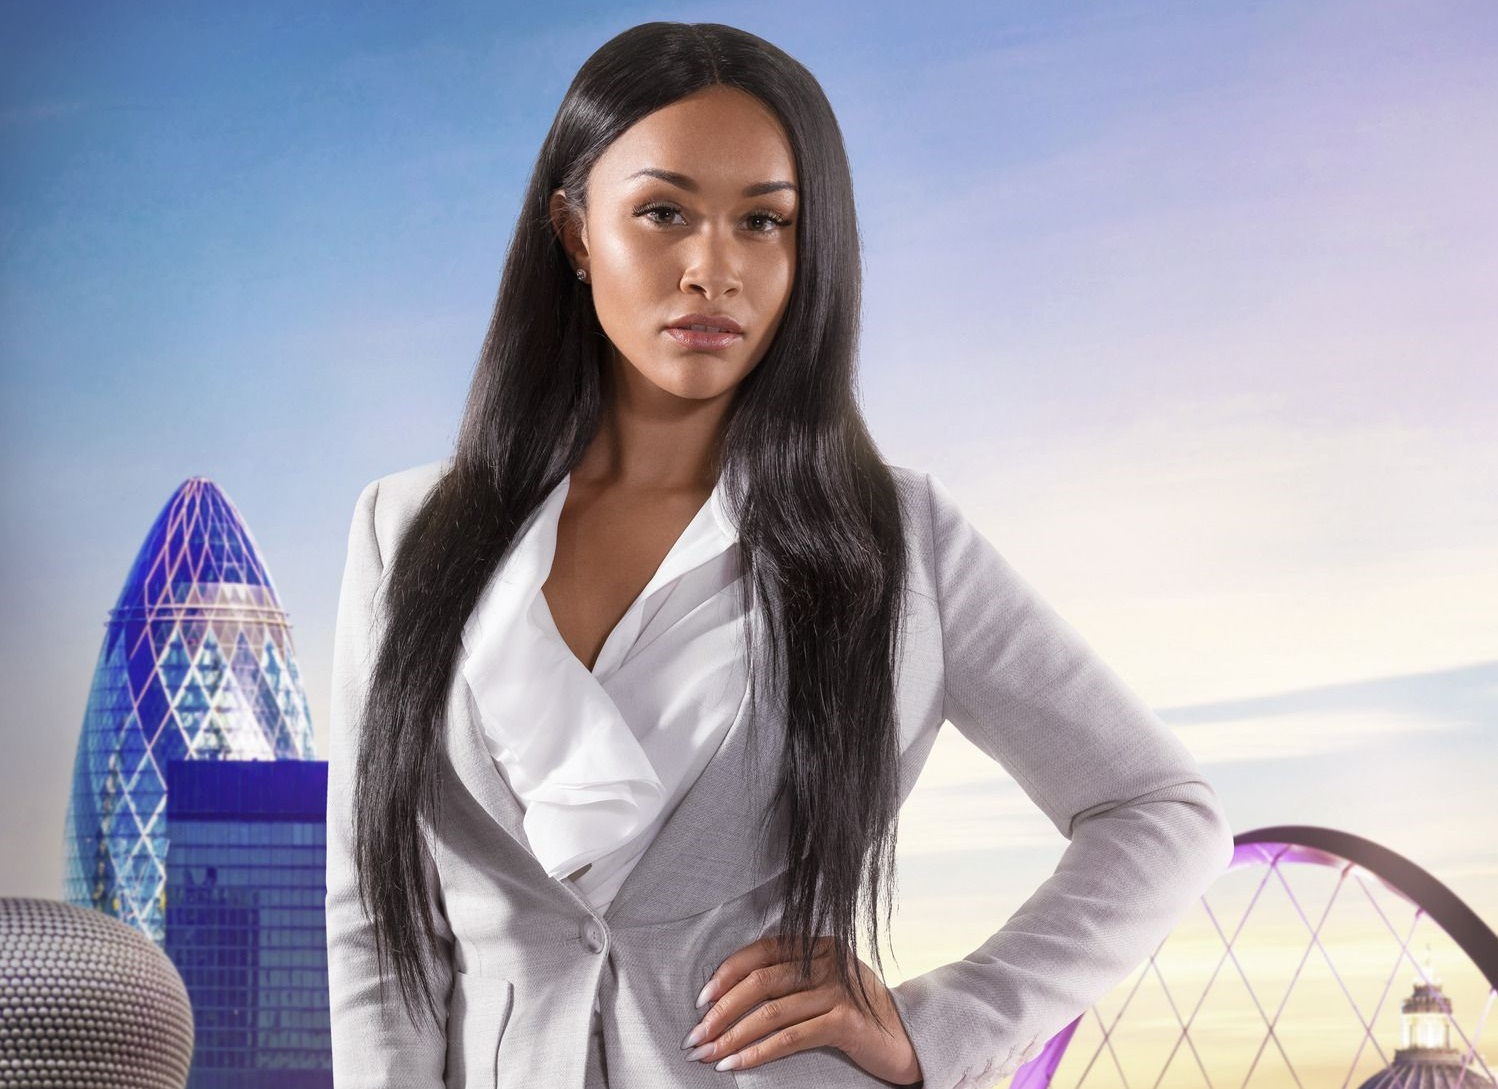 How old is The Apprentice's Sian Gabbidon and what's her swimwear company called?